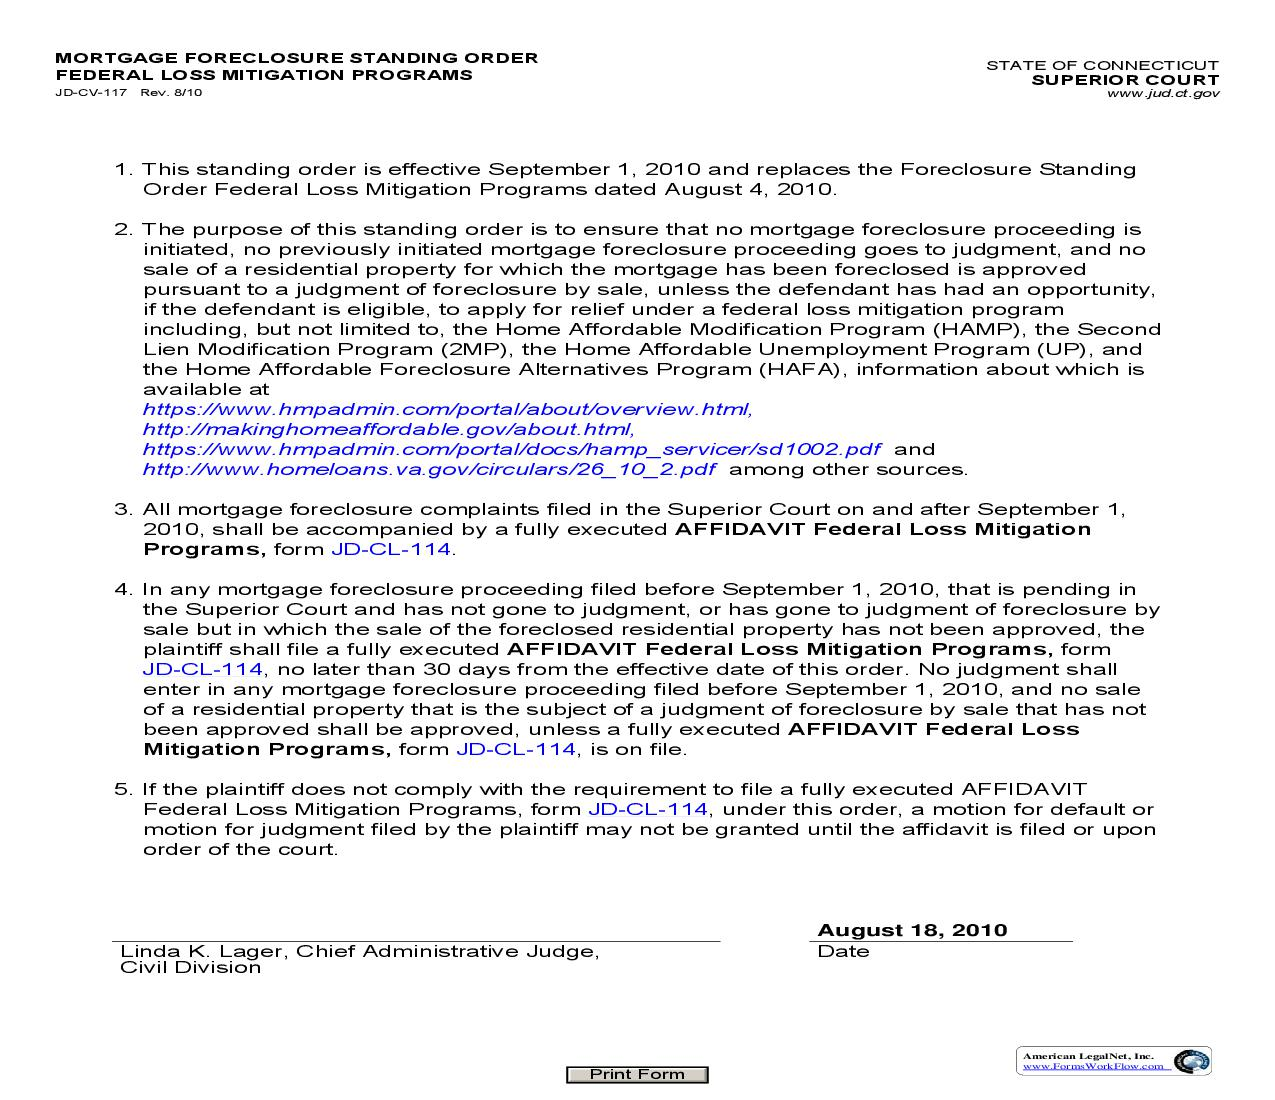 Mortgage Foreclosure Standing Order Federal Loss Mitigation Programs {JD-CV-117} | Pdf Fpdf Doc Docx | Connecticut